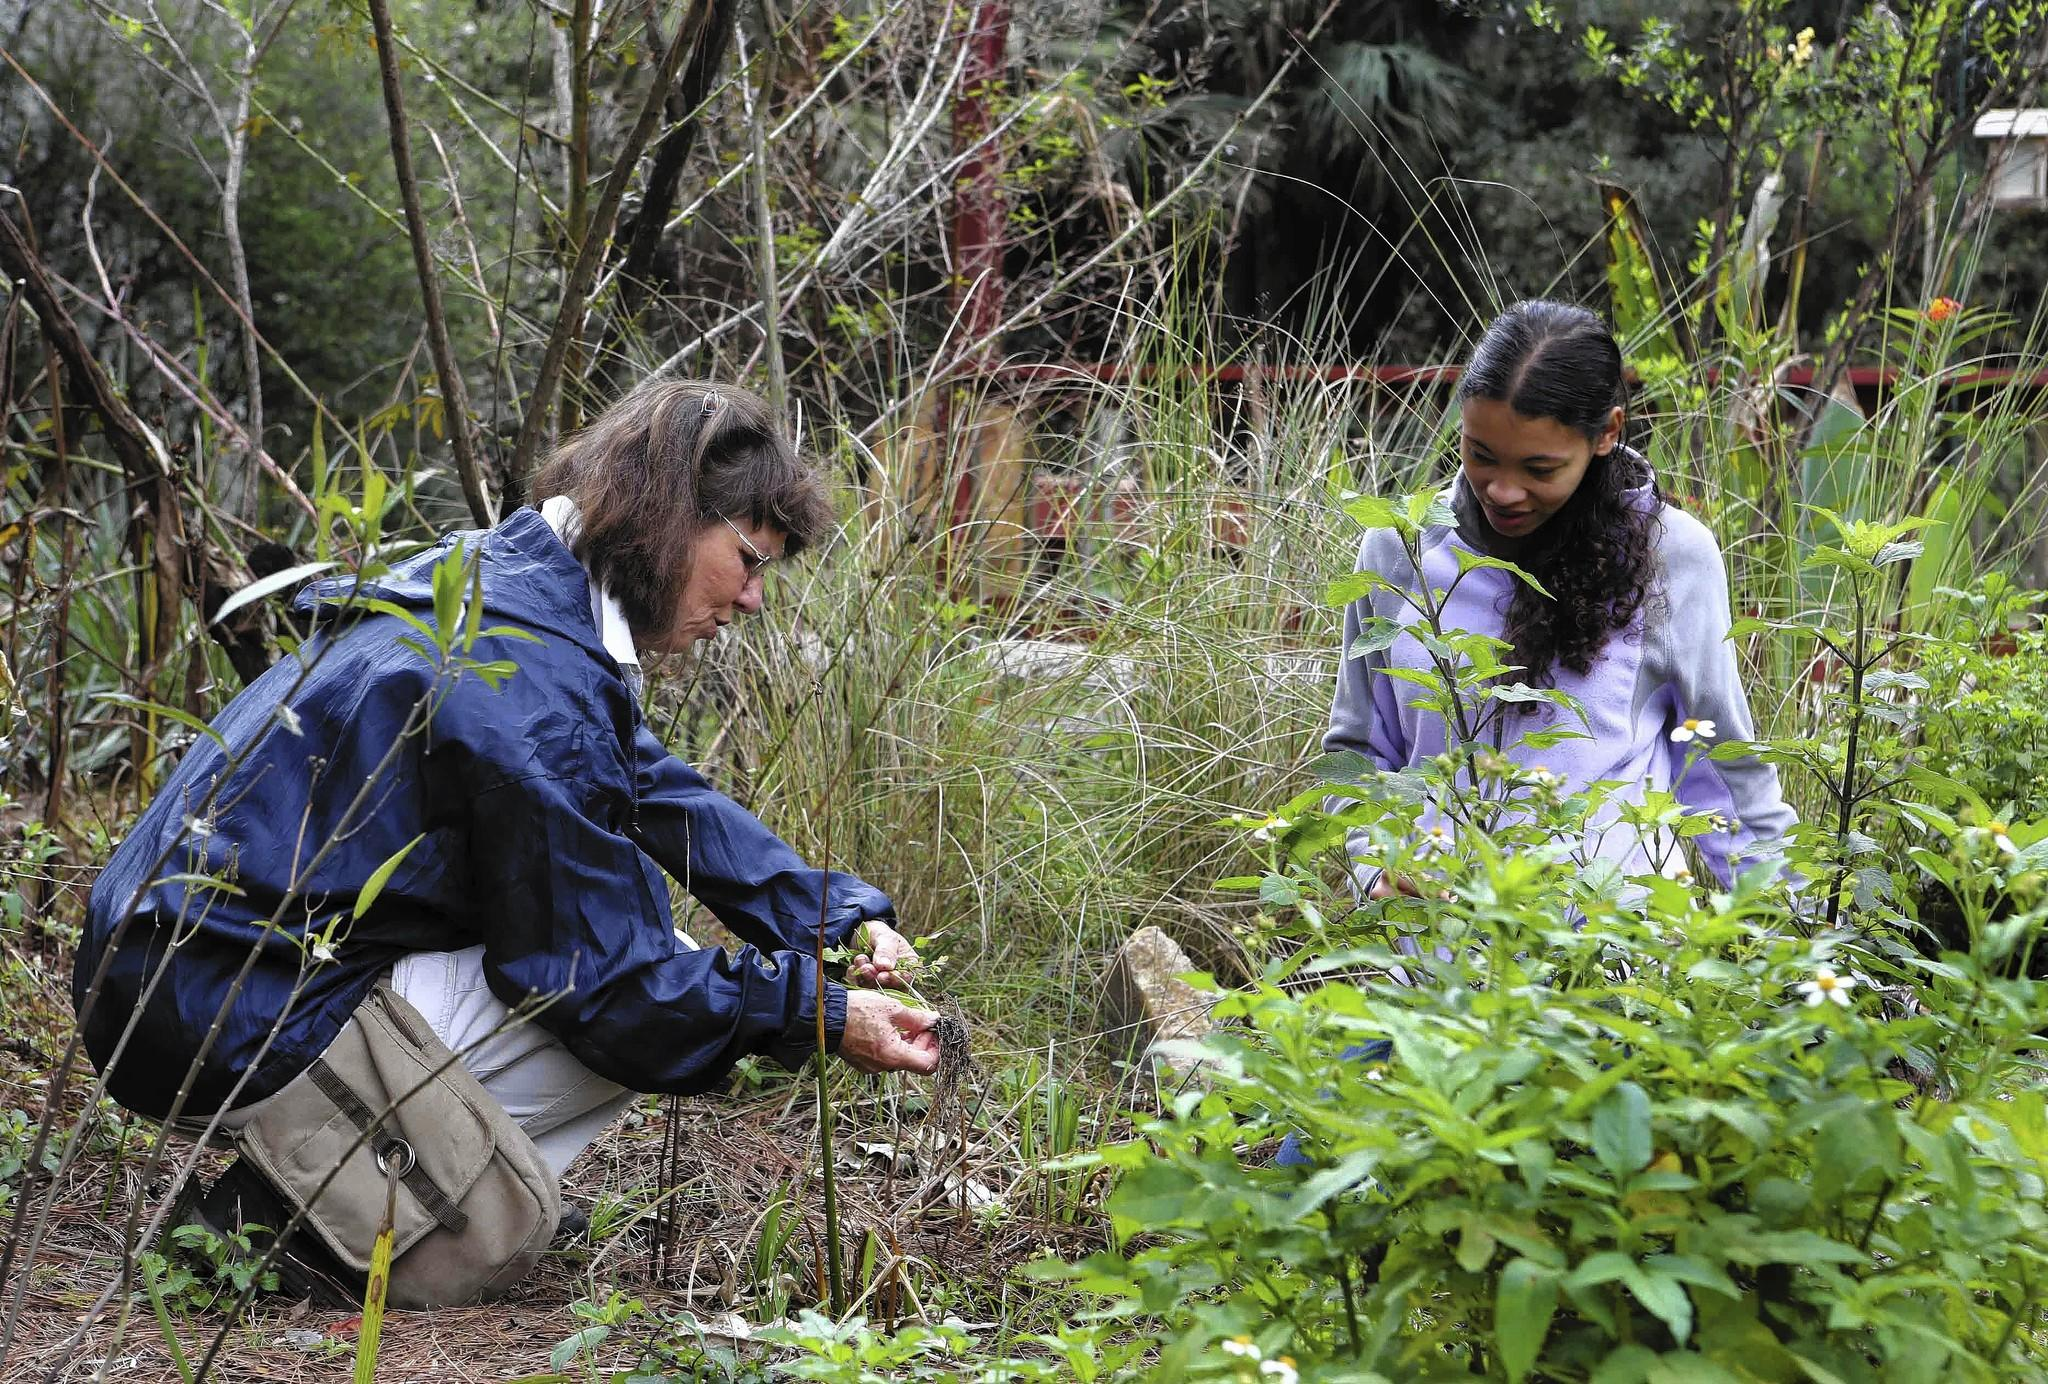 Lavon Silvernell, left and Heather Wiggins pull unwanted weeds Wednesday, February 12, 2014 at Trout Lake Nature Center in Eustis.